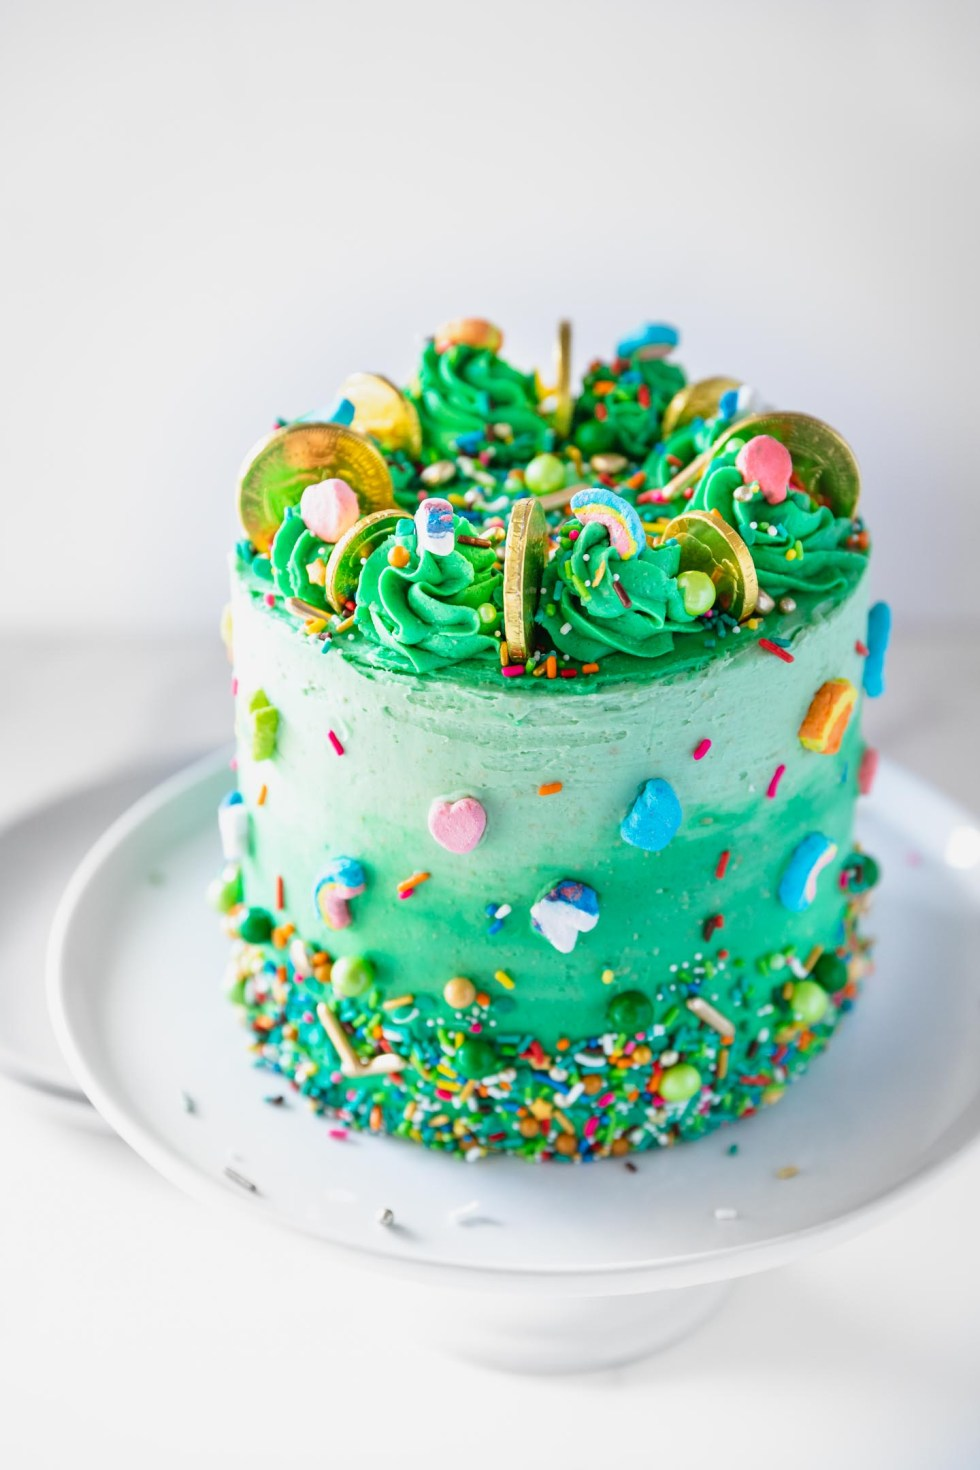 Front view of a green ombre cake with lucky charms and gold coins on top.